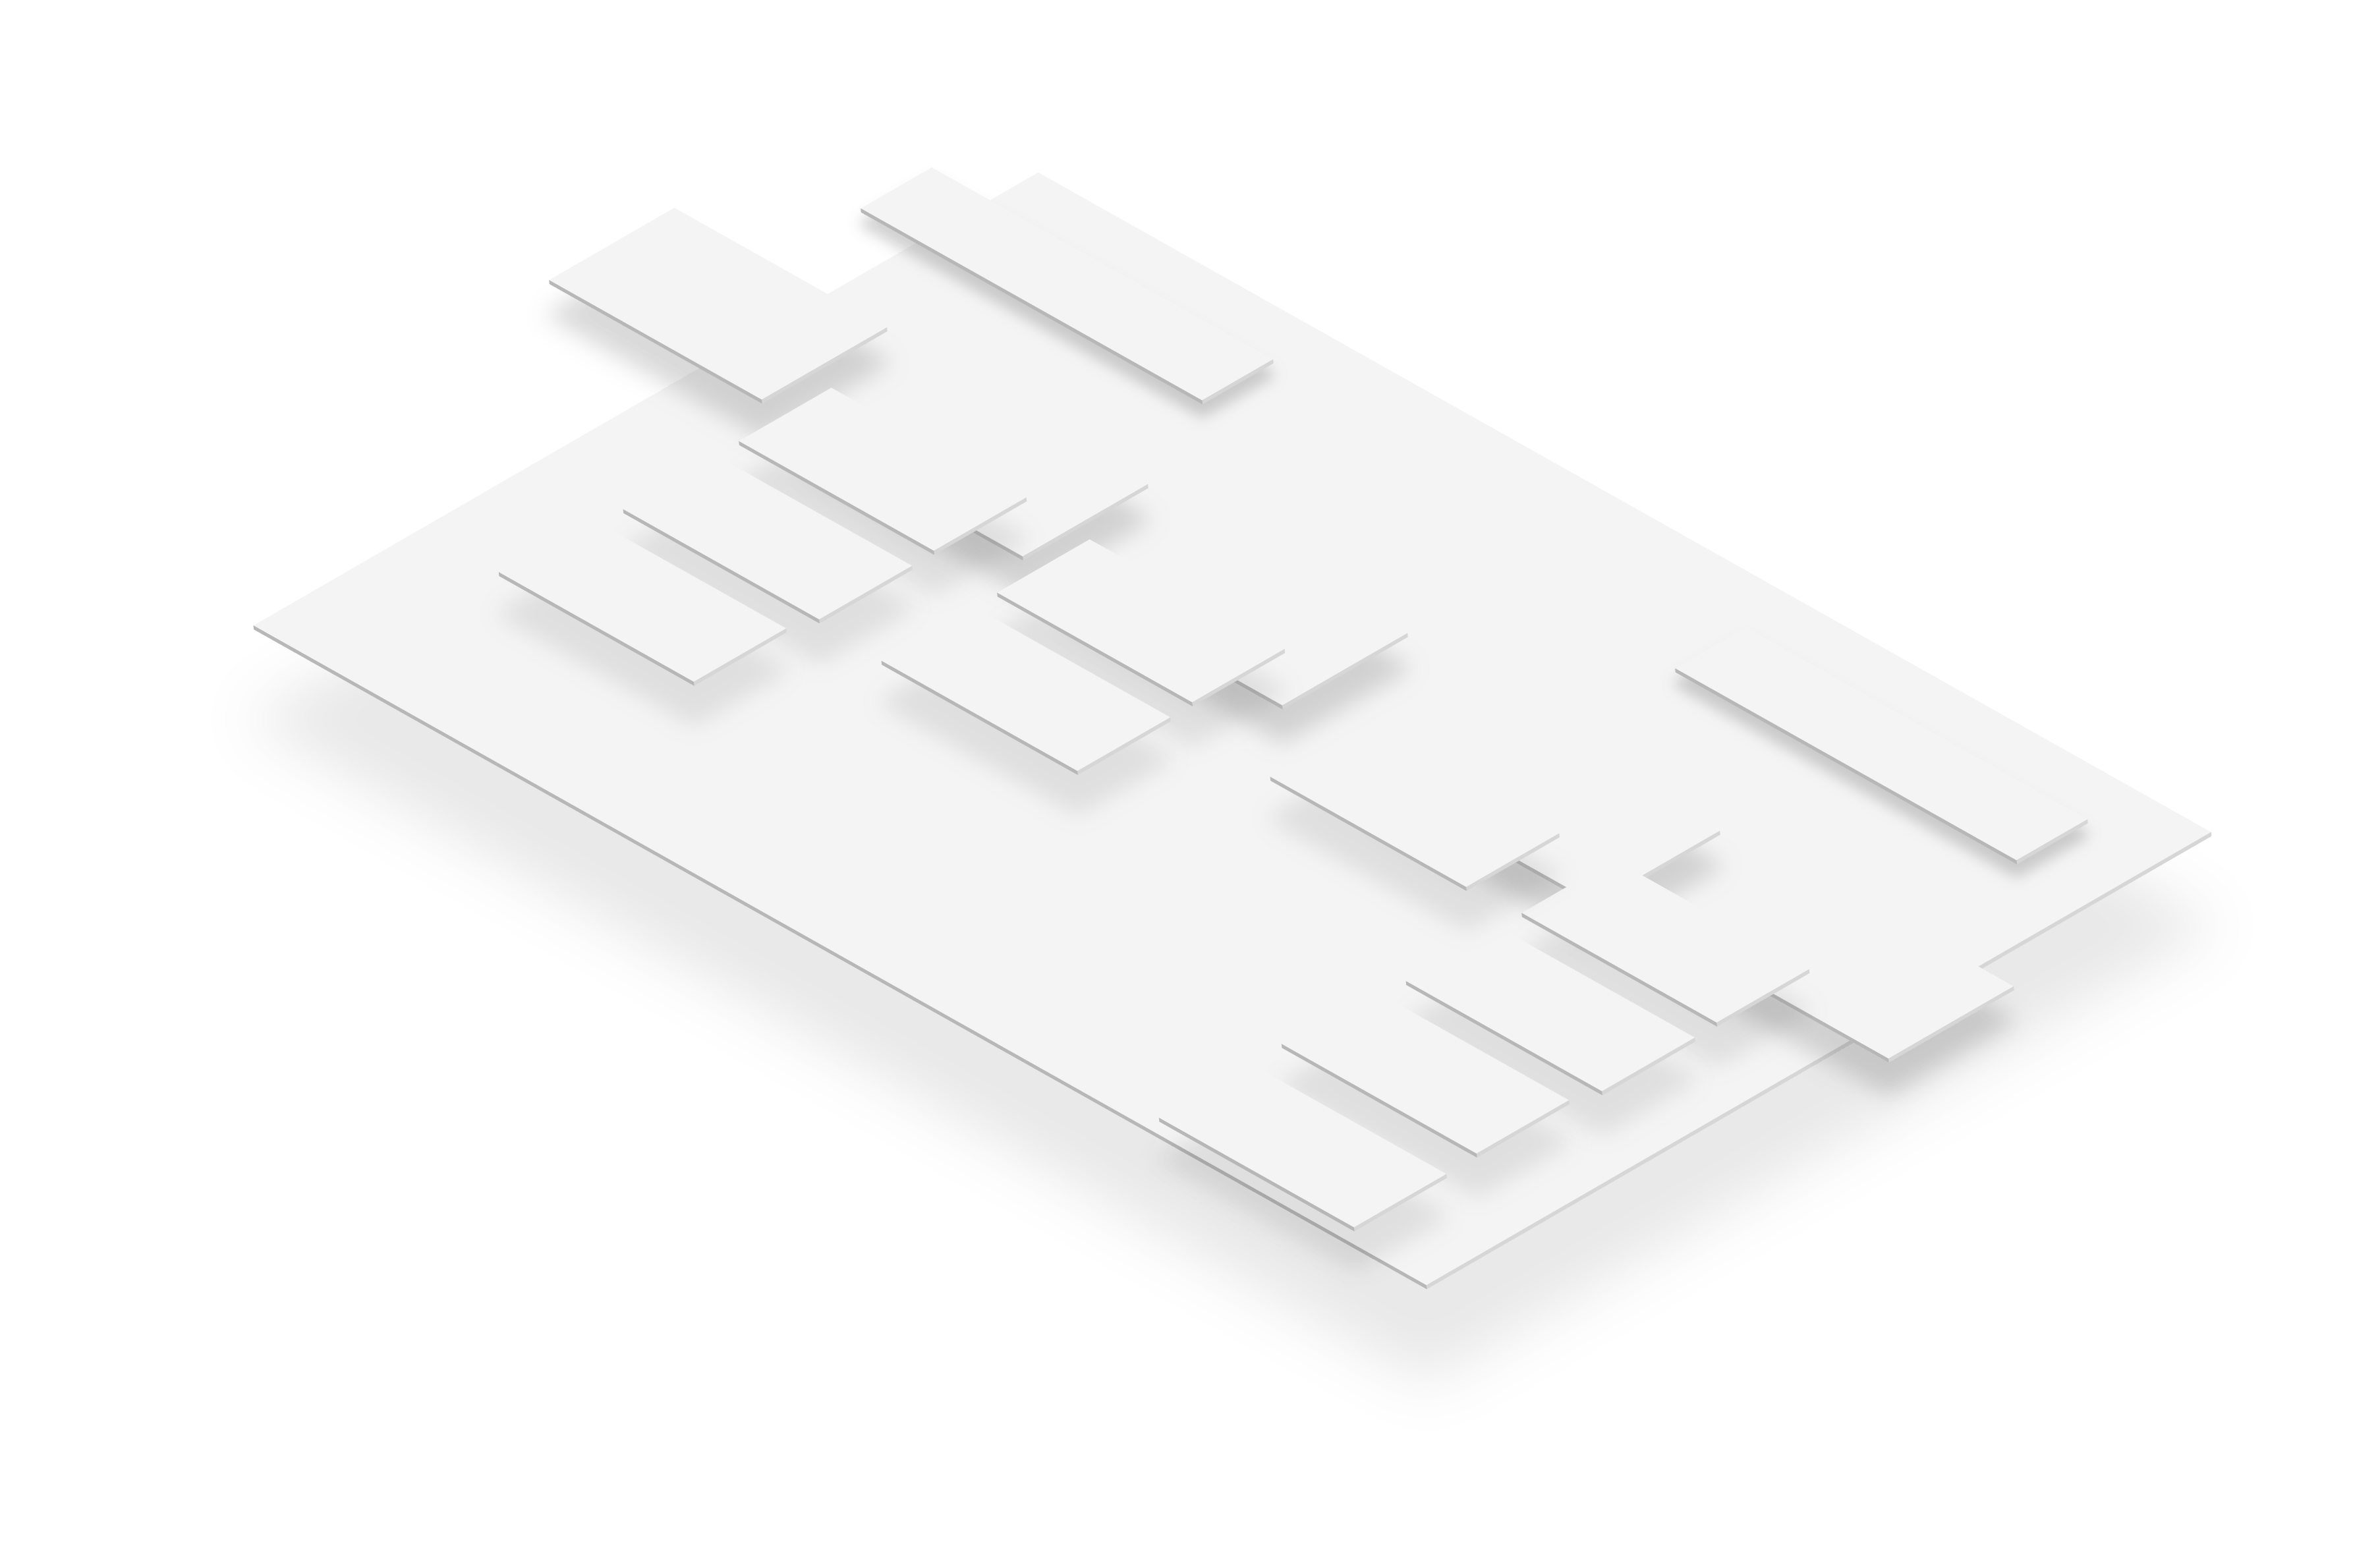 abstract information architecture